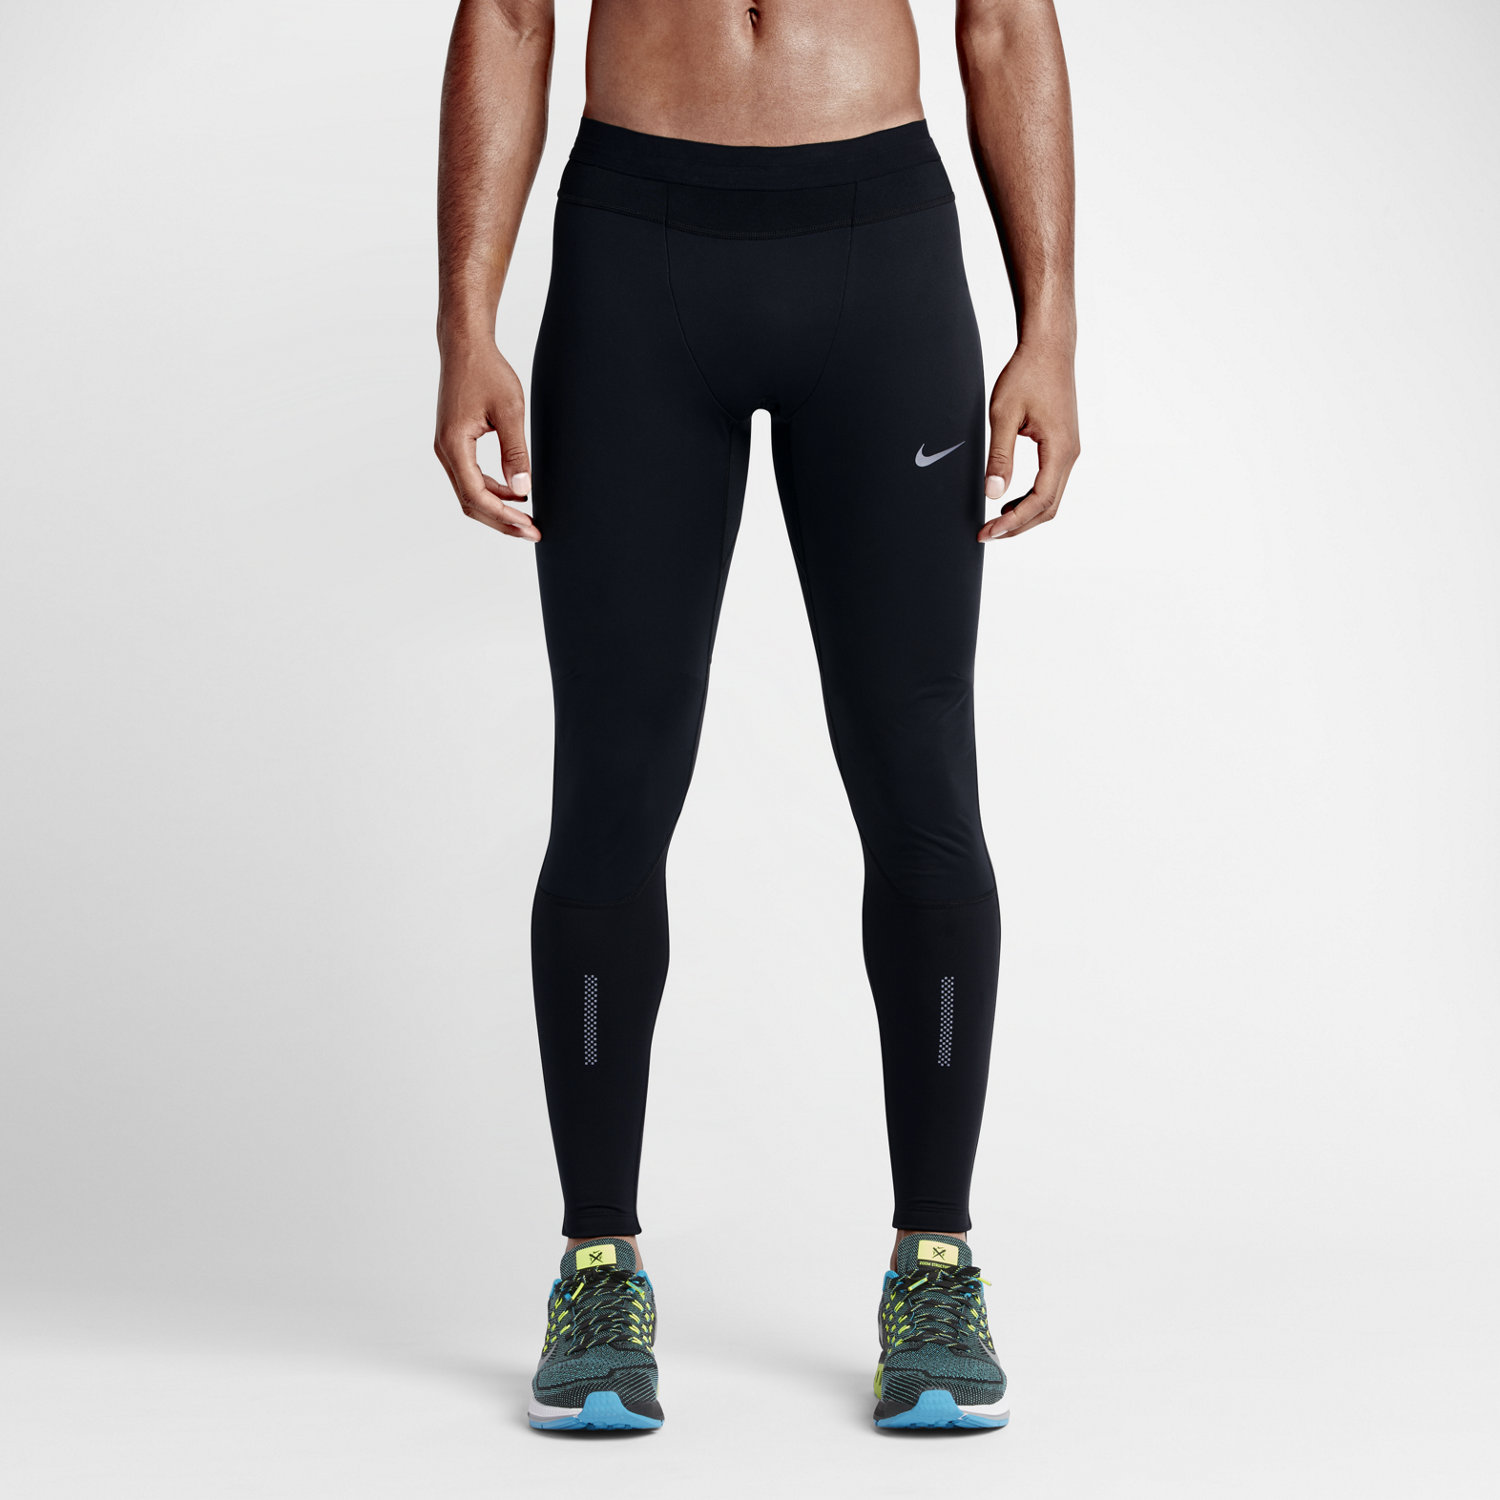 ADIDAS MEN'S TIGHTS. Get creative and mix and match your athletic style with the engineered comfort of men's tights. Check out performance technologies to help your focus and modernize your sport's look and feel. RUNNING TIGHTS OR SHORTS? Training outdoors or running the trails means you're faced with a higher chance for unexpected distraction.